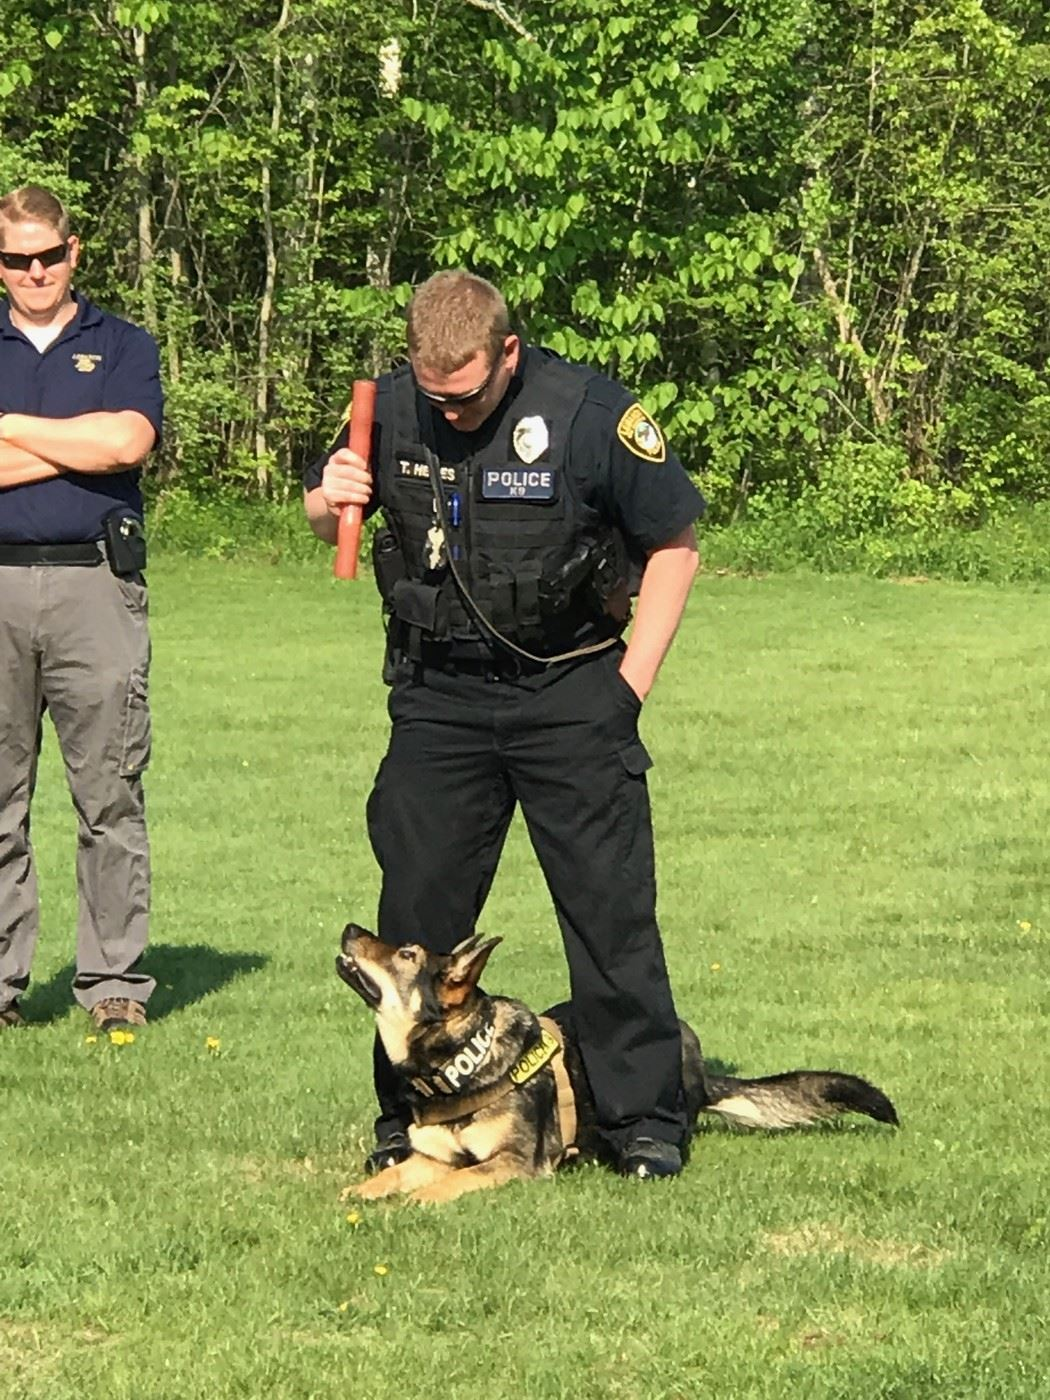 Officer Hewes and K9 Kymba